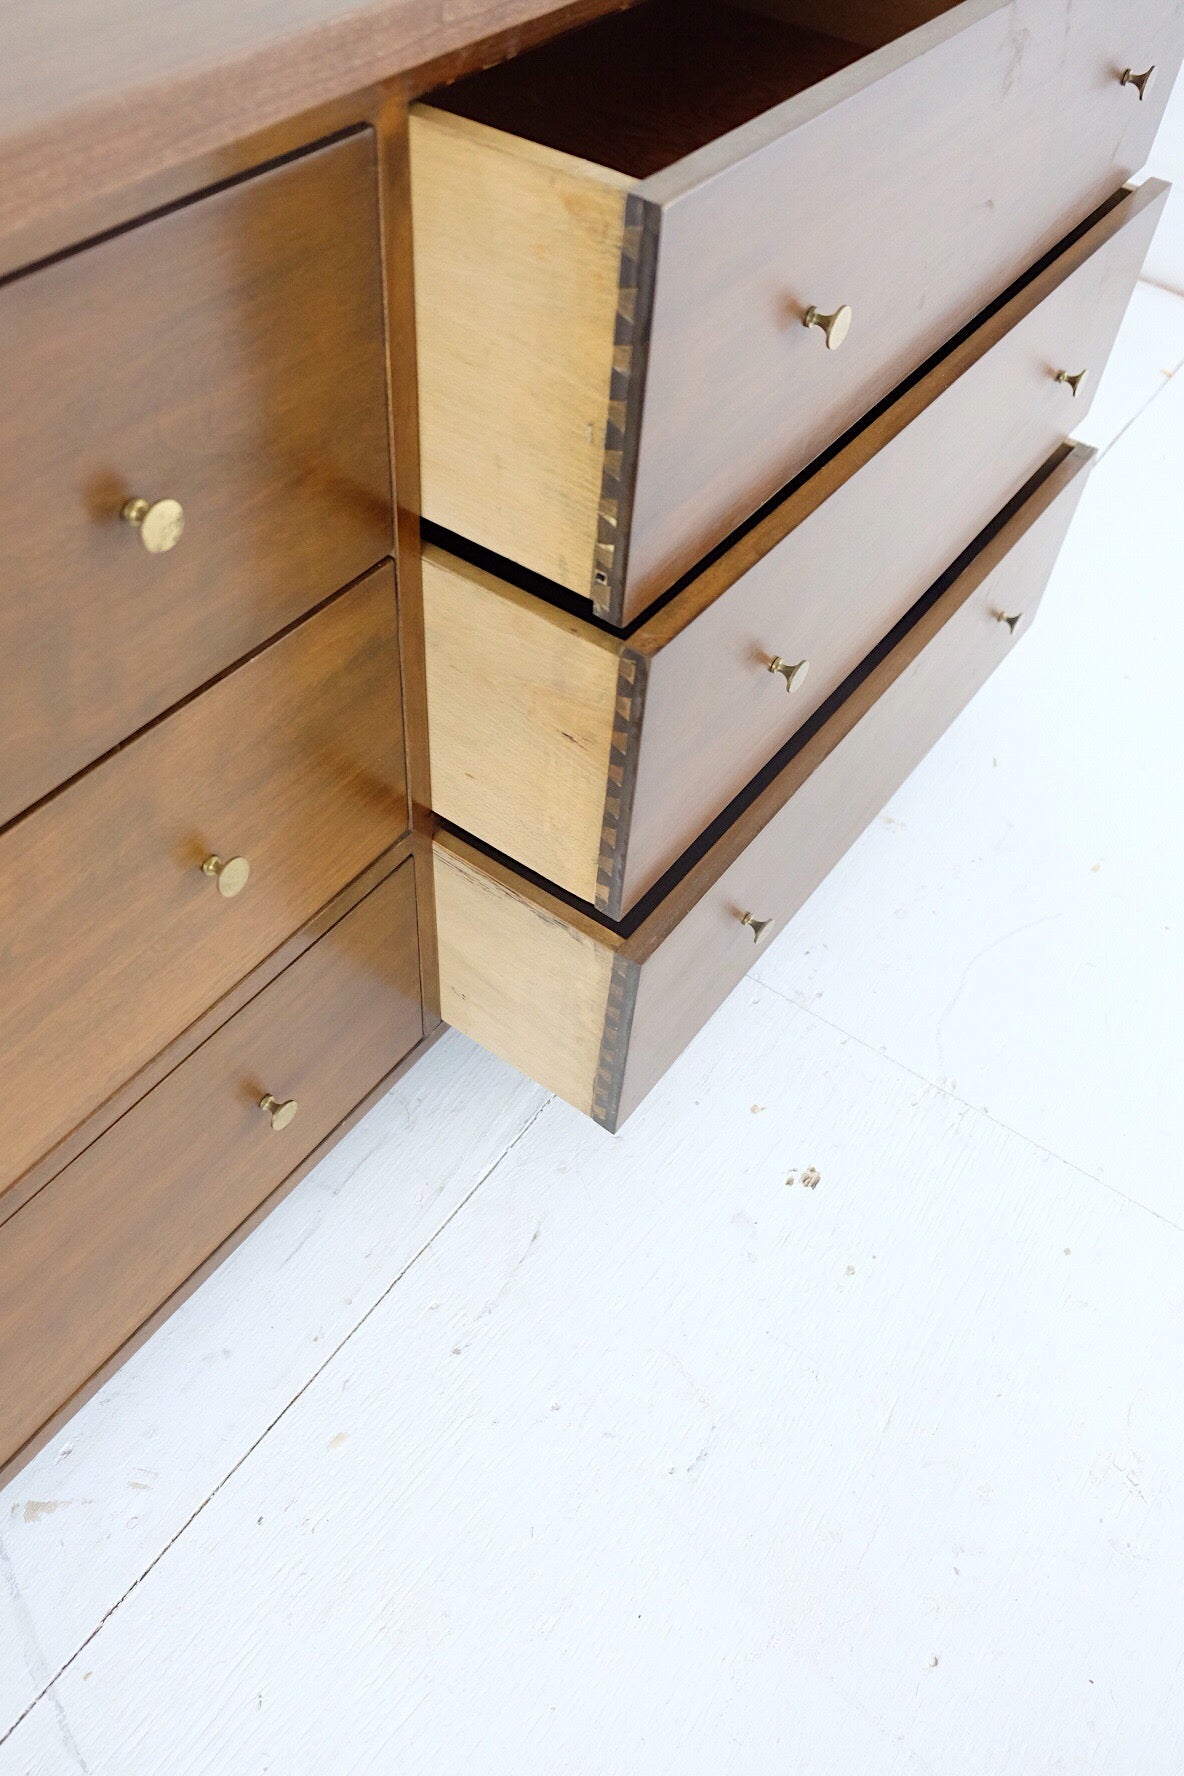 Minimalistic Six Drawer Storage Unit With Toe Kick Super Clean Lines and Beautiful Brass Knobs Dovetailed Drawers New Cherry Veneer Top and Edges